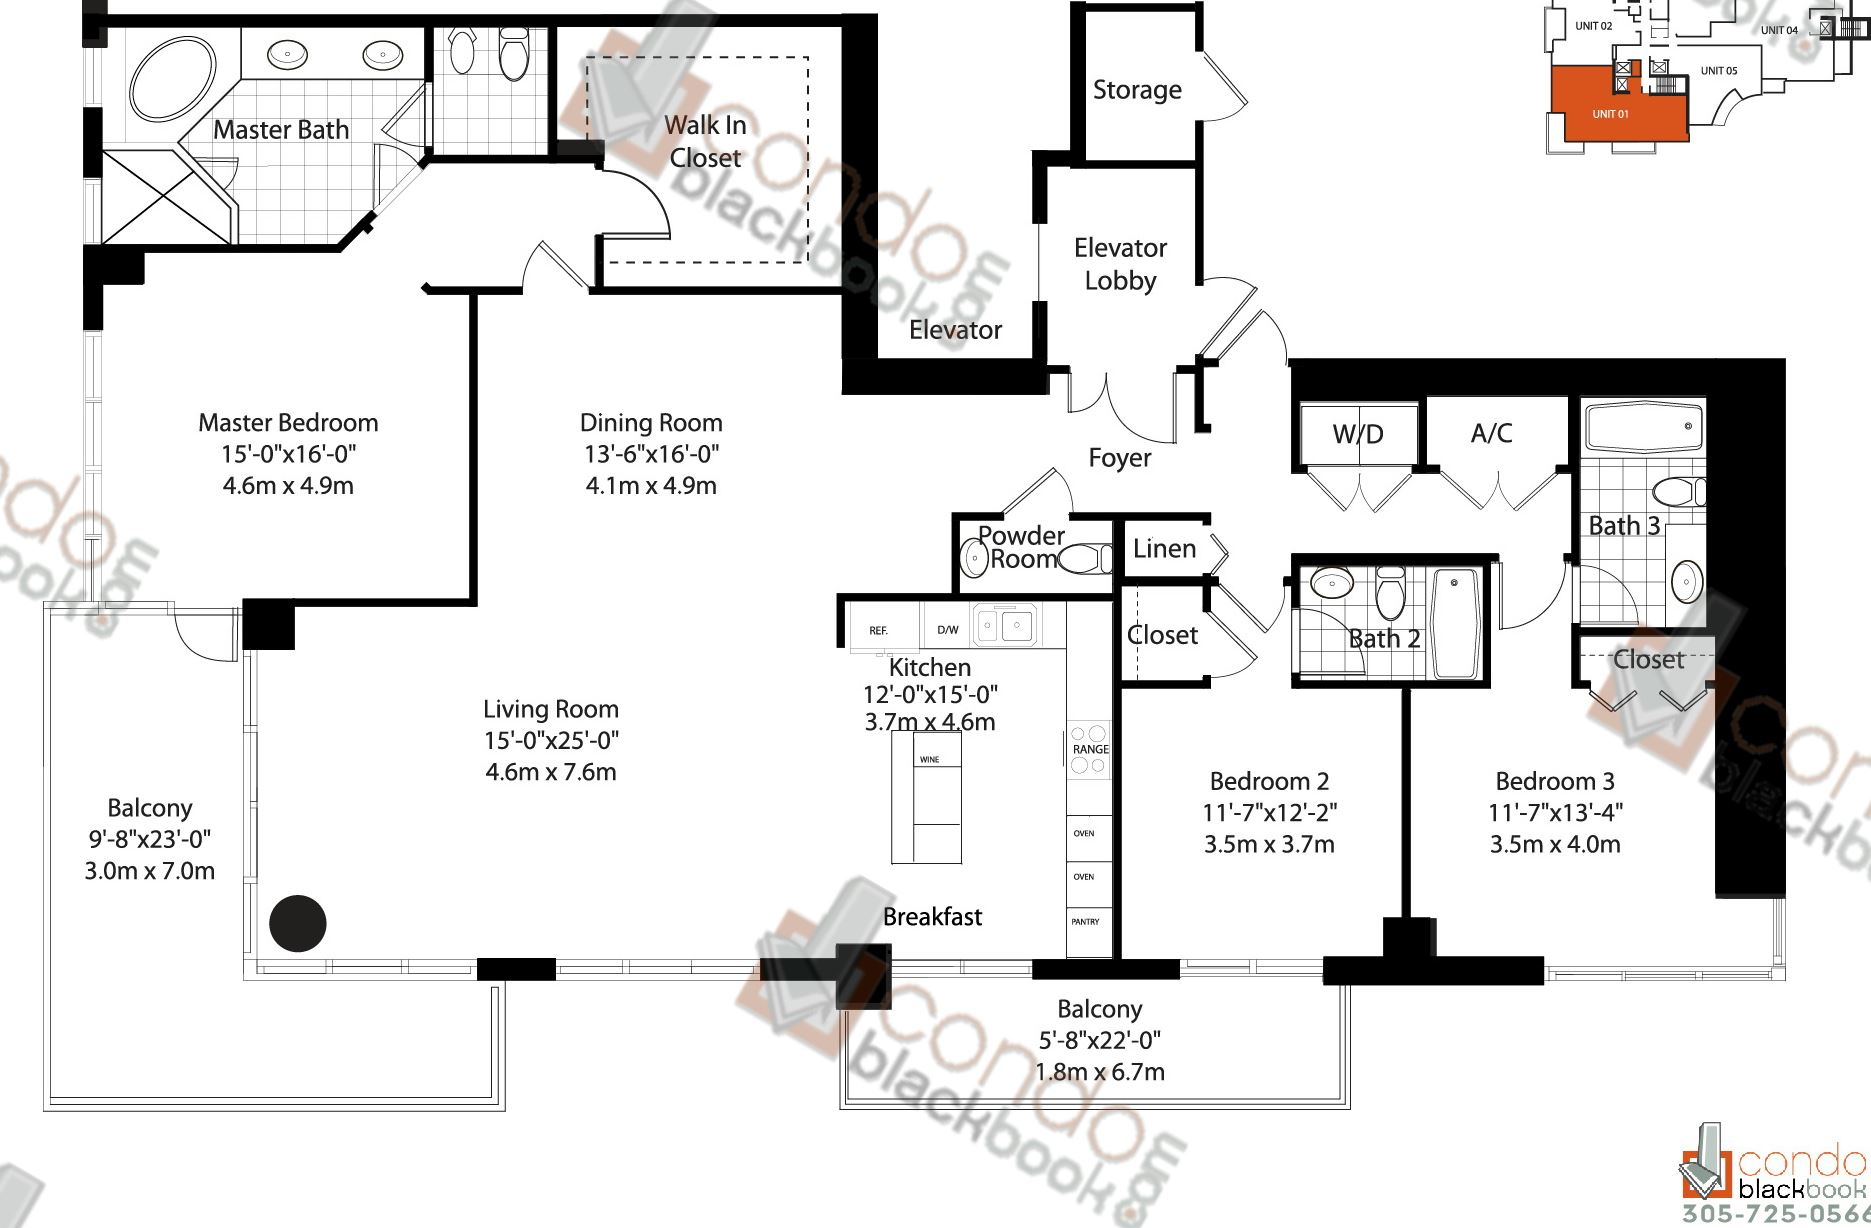 Floor plan for Asia Brickell Key Miami, model Unit 01, line 01, 1/1,5 bedrooms, 2,023 sq ft